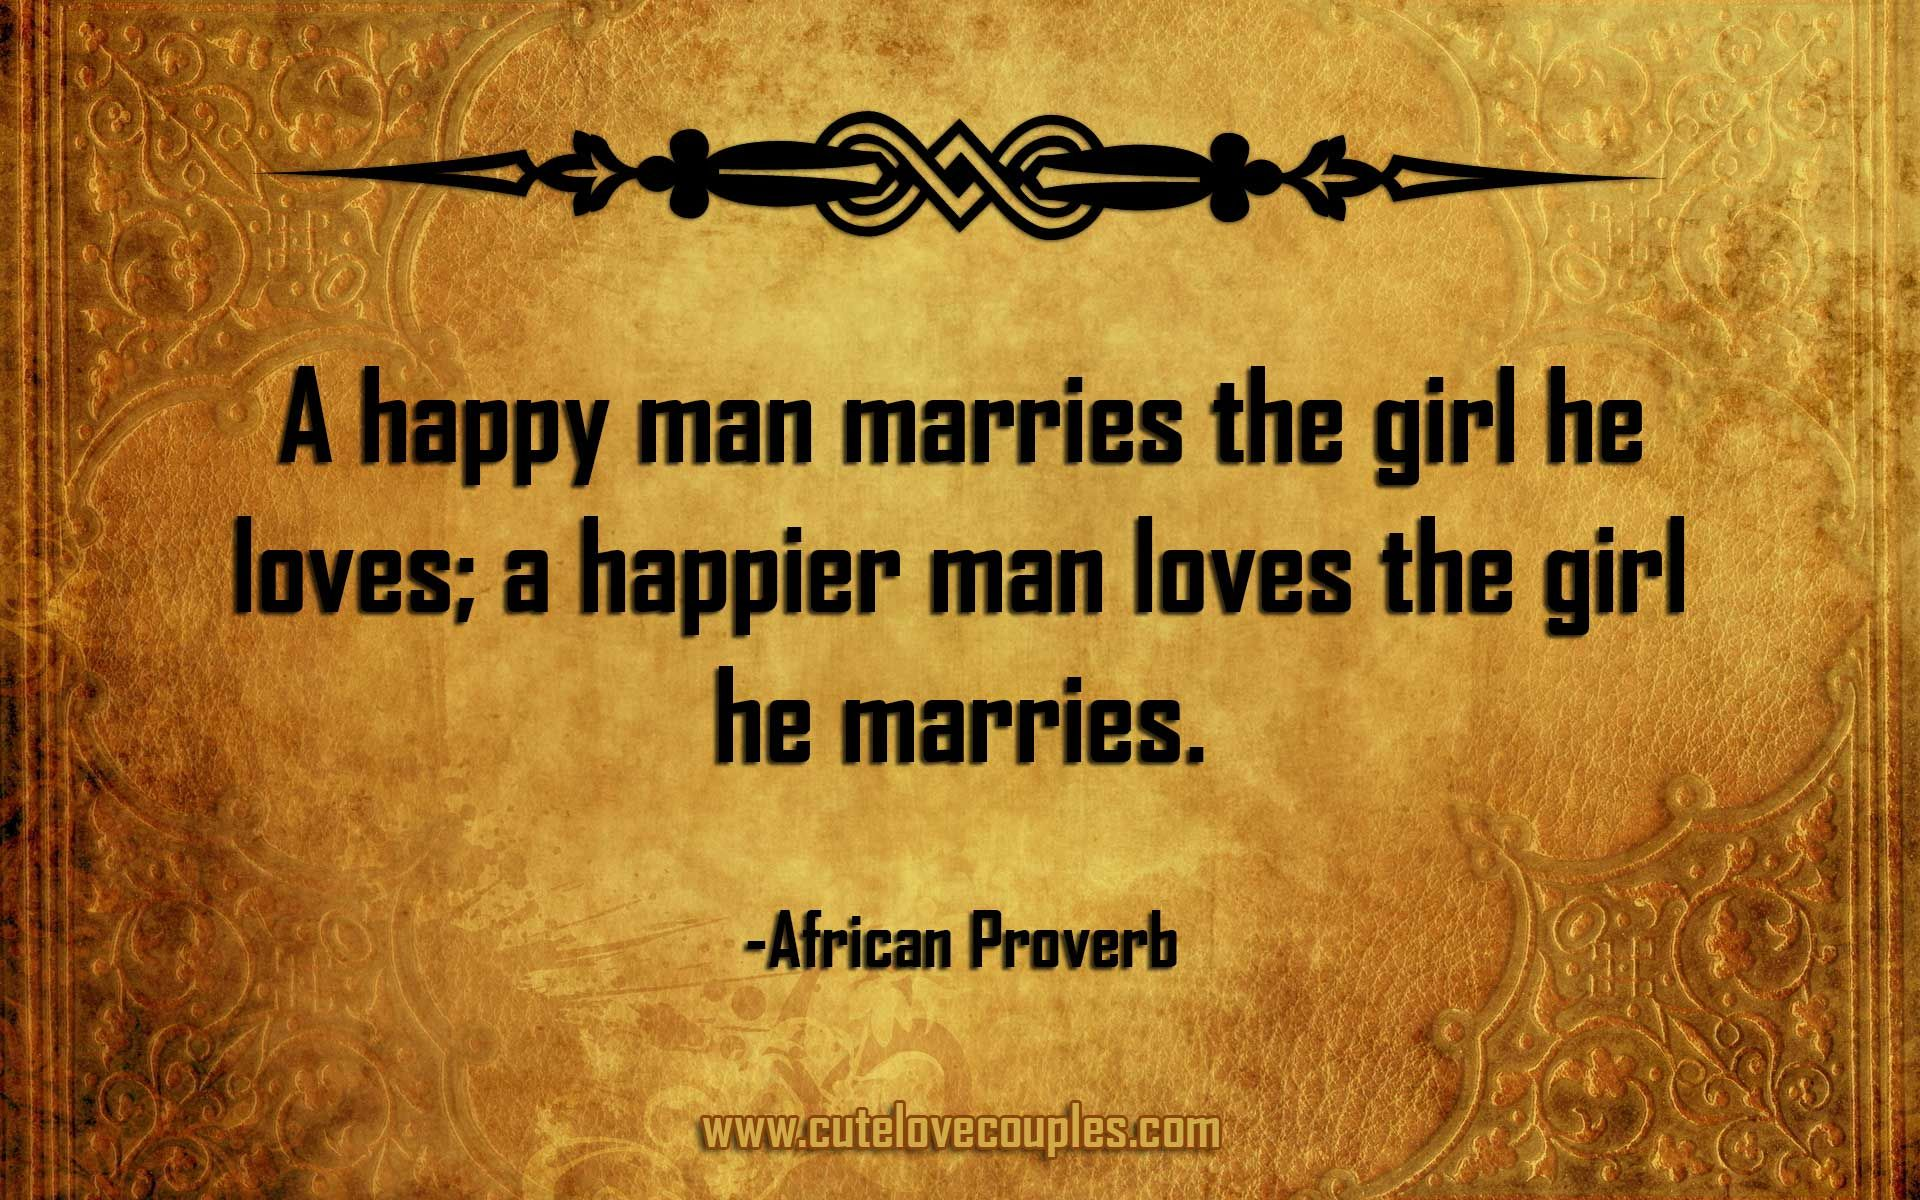 Great African Proverbs about Love and MarriageThat Will Make You